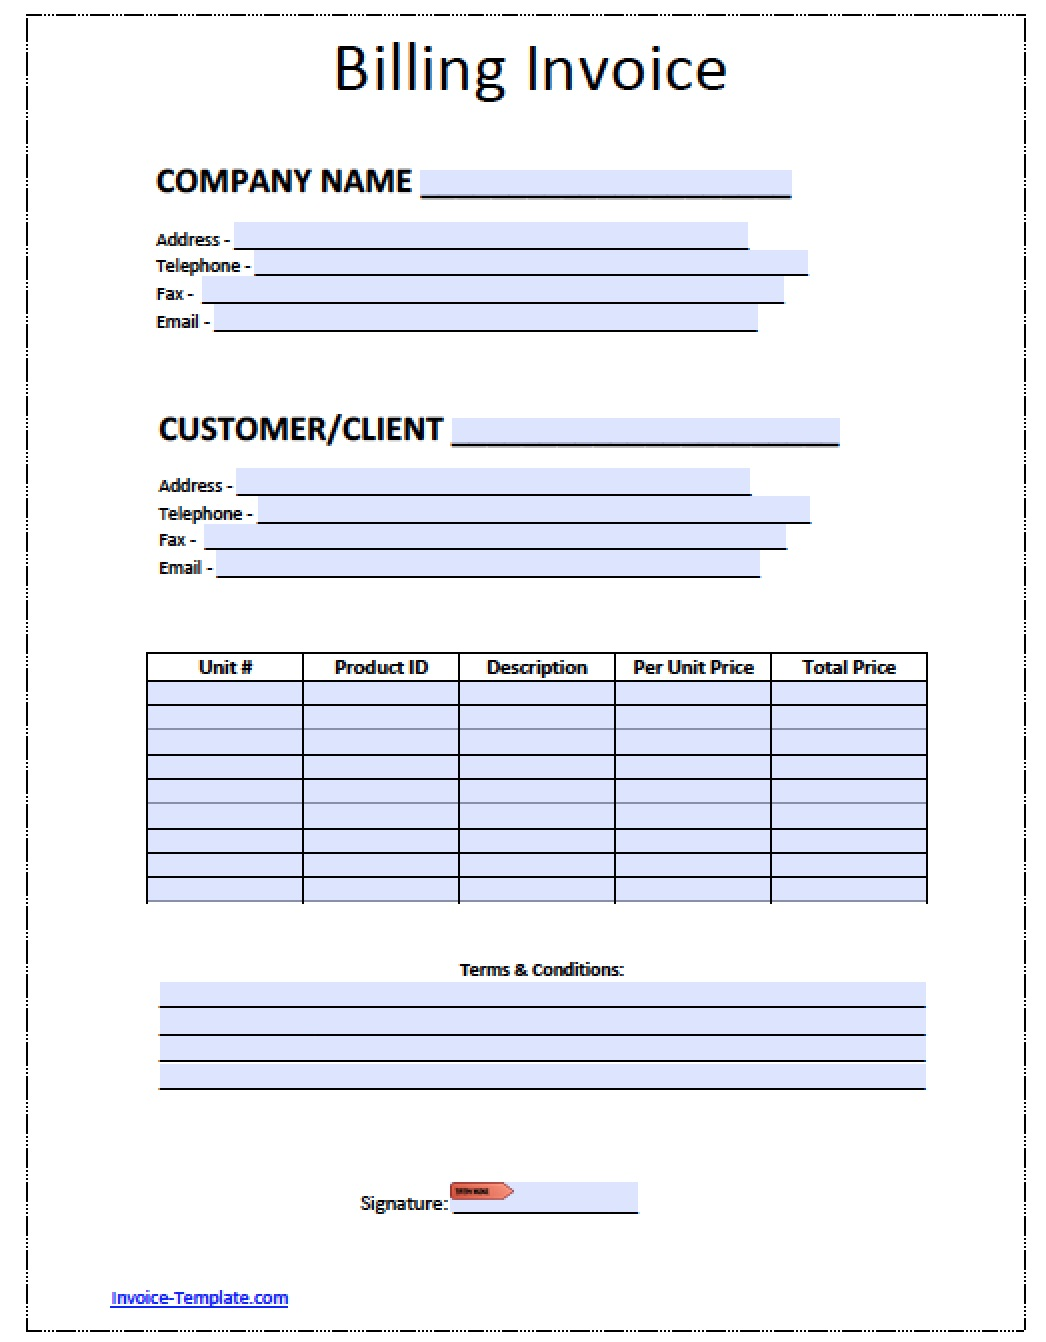 Centralasianshepherdus  Winning Billing Invoice Invoices Faq U Cloudflare Support Billing  With Luxury Free Billing Invoice Template  Excel  Pdf  Word Doc  Billing With Easy On The Eye Home Depot Receipt Also Keep Your Receipt In Addition Tj Maxx Return Without Receipt And Hobby Lobby Return Policy Without Receipt As Well As How To Request Read Receipt In Gmail Additionally Receipt Sample From Happytomco With Centralasianshepherdus  Luxury Billing Invoice Invoices Faq U Cloudflare Support Billing  With Easy On The Eye Free Billing Invoice Template  Excel  Pdf  Word Doc  Billing And Winning Home Depot Receipt Also Keep Your Receipt In Addition Tj Maxx Return Without Receipt From Happytomco